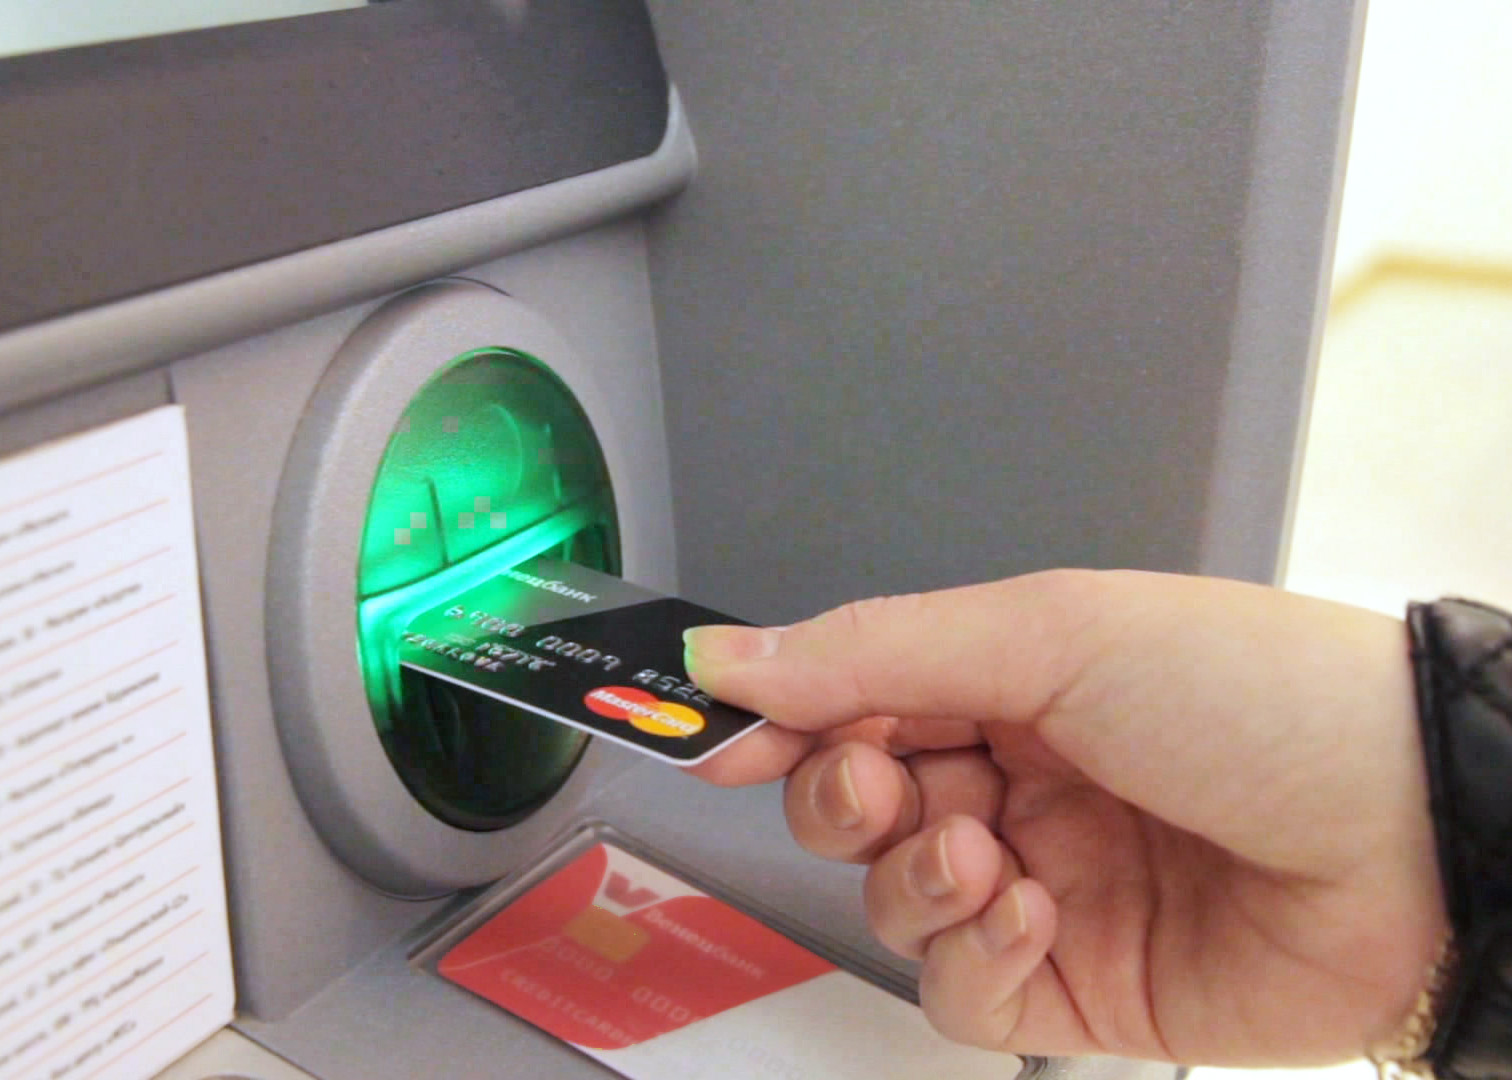 Russians will be able to use smartphones instead of cards in the ATM